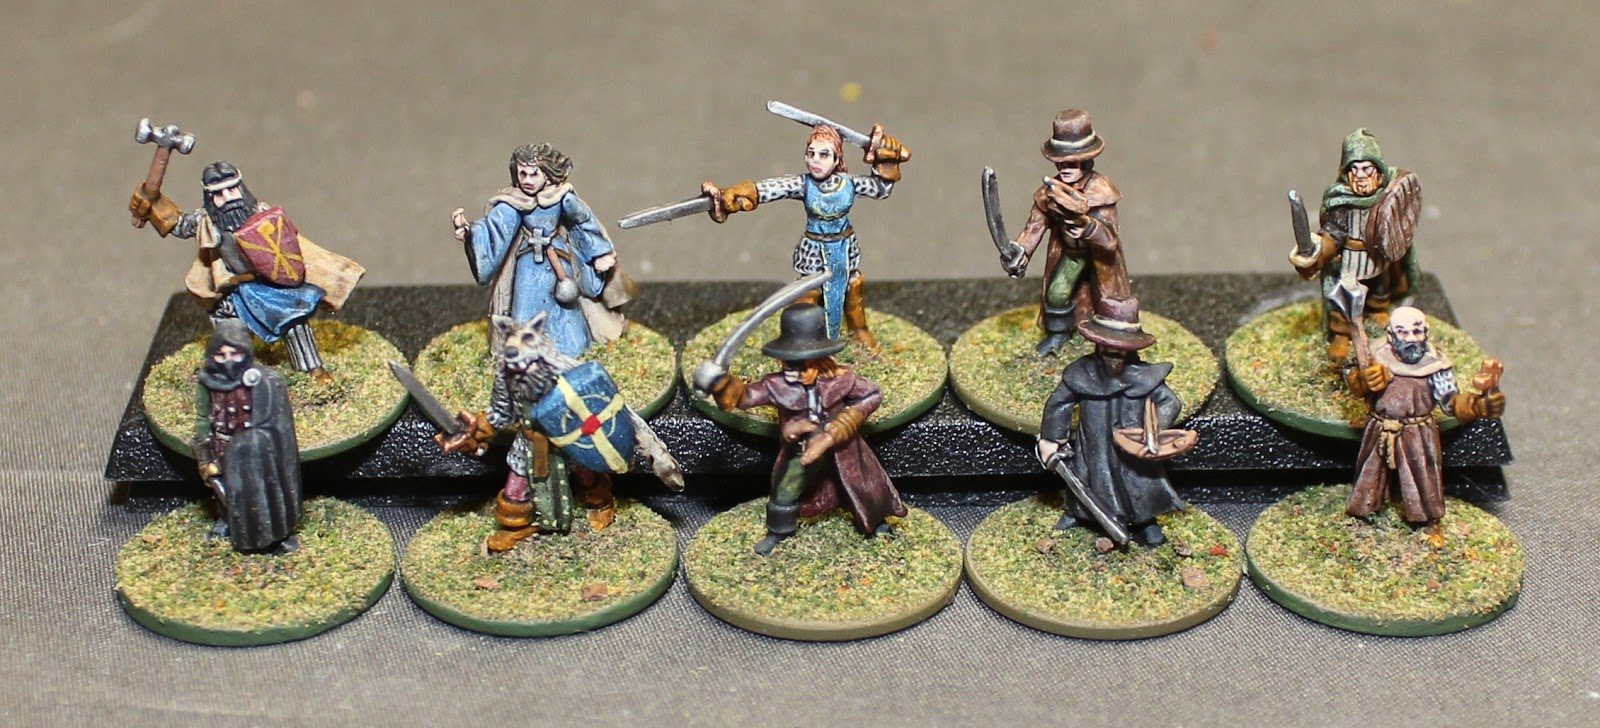 Splintered Light Bring 15mm Role-Playing Heroes To Life – OnTableTop